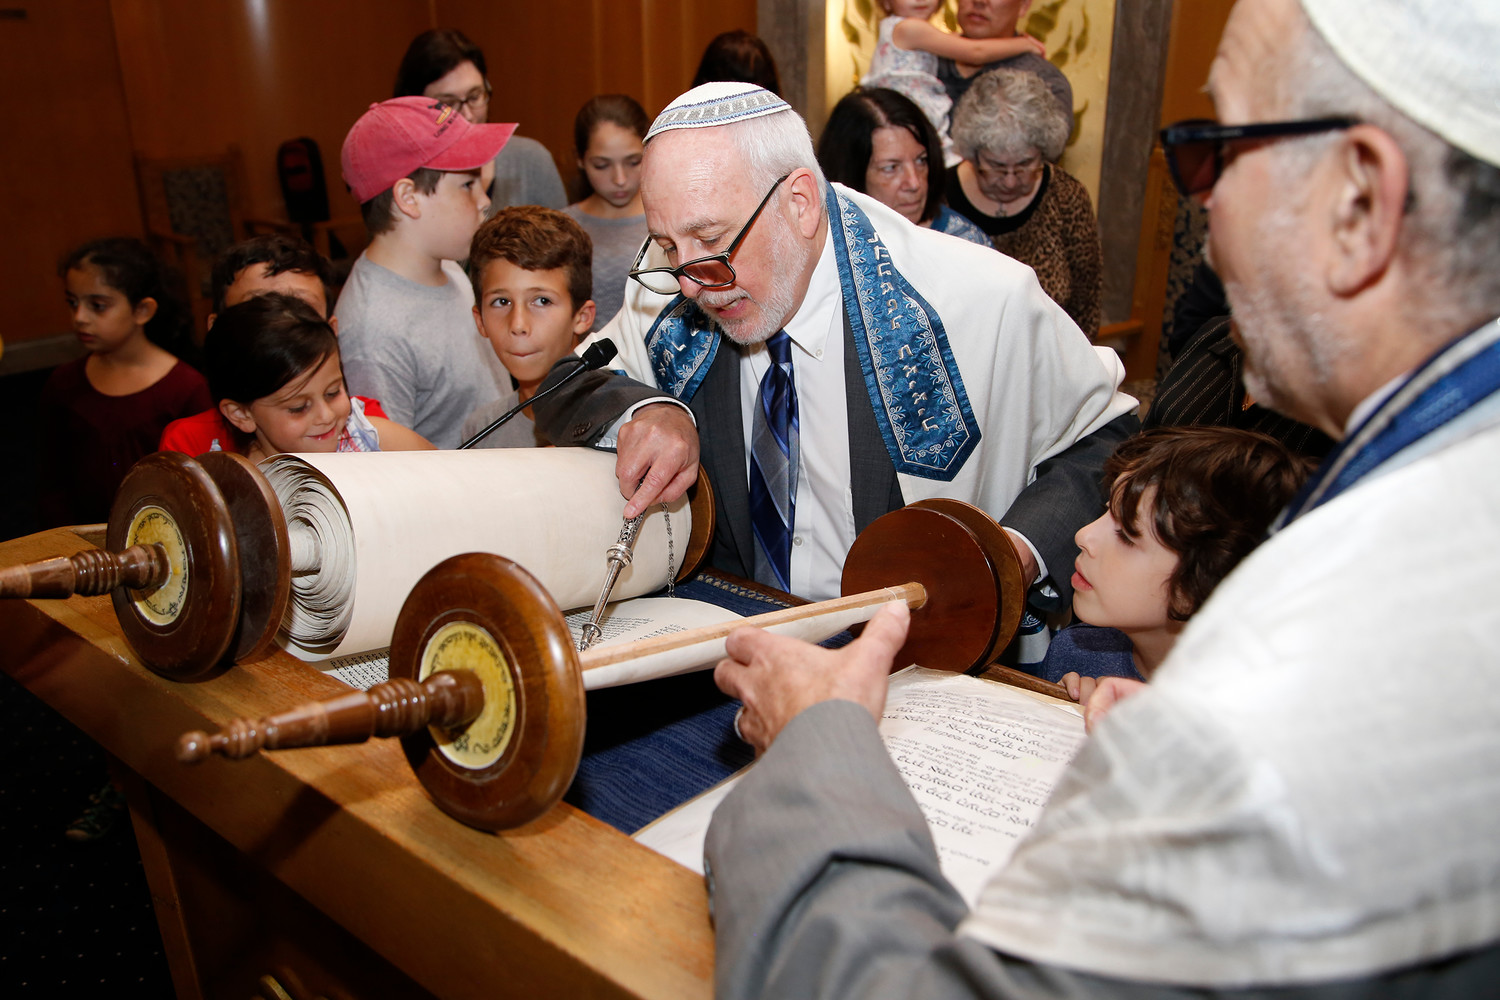 Rabbi Elliot Skiddell and Rabbi Marc Gruber, right, gathered the children and read from the Torah during a Simchat Torah service on Oct. 11.